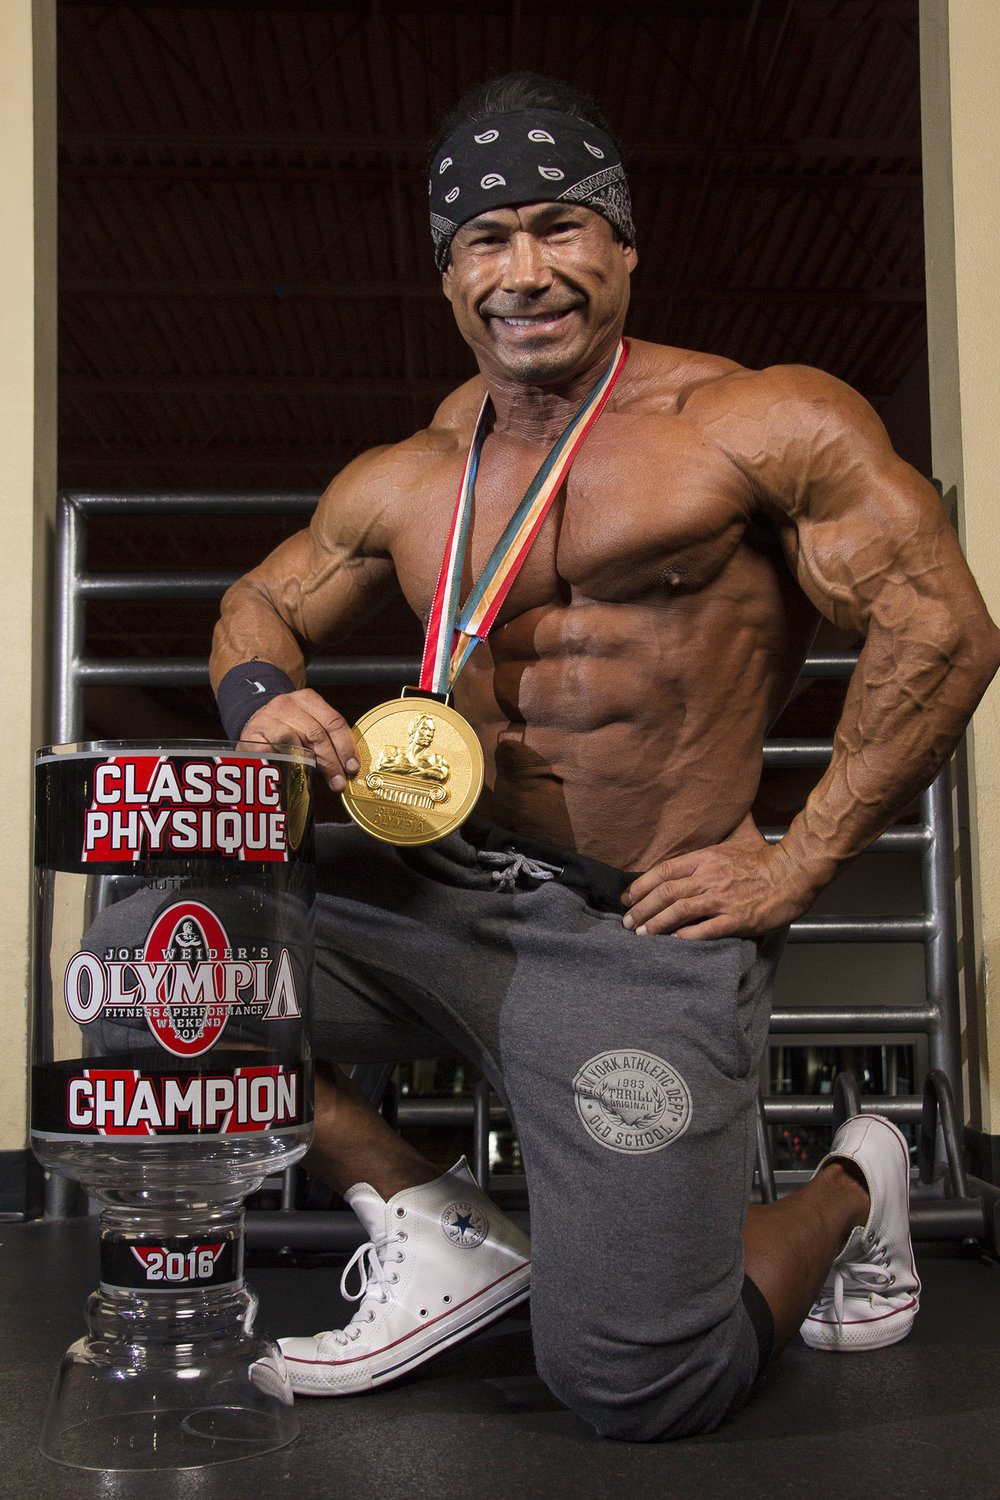 Mr O Classic physique Danny Hester